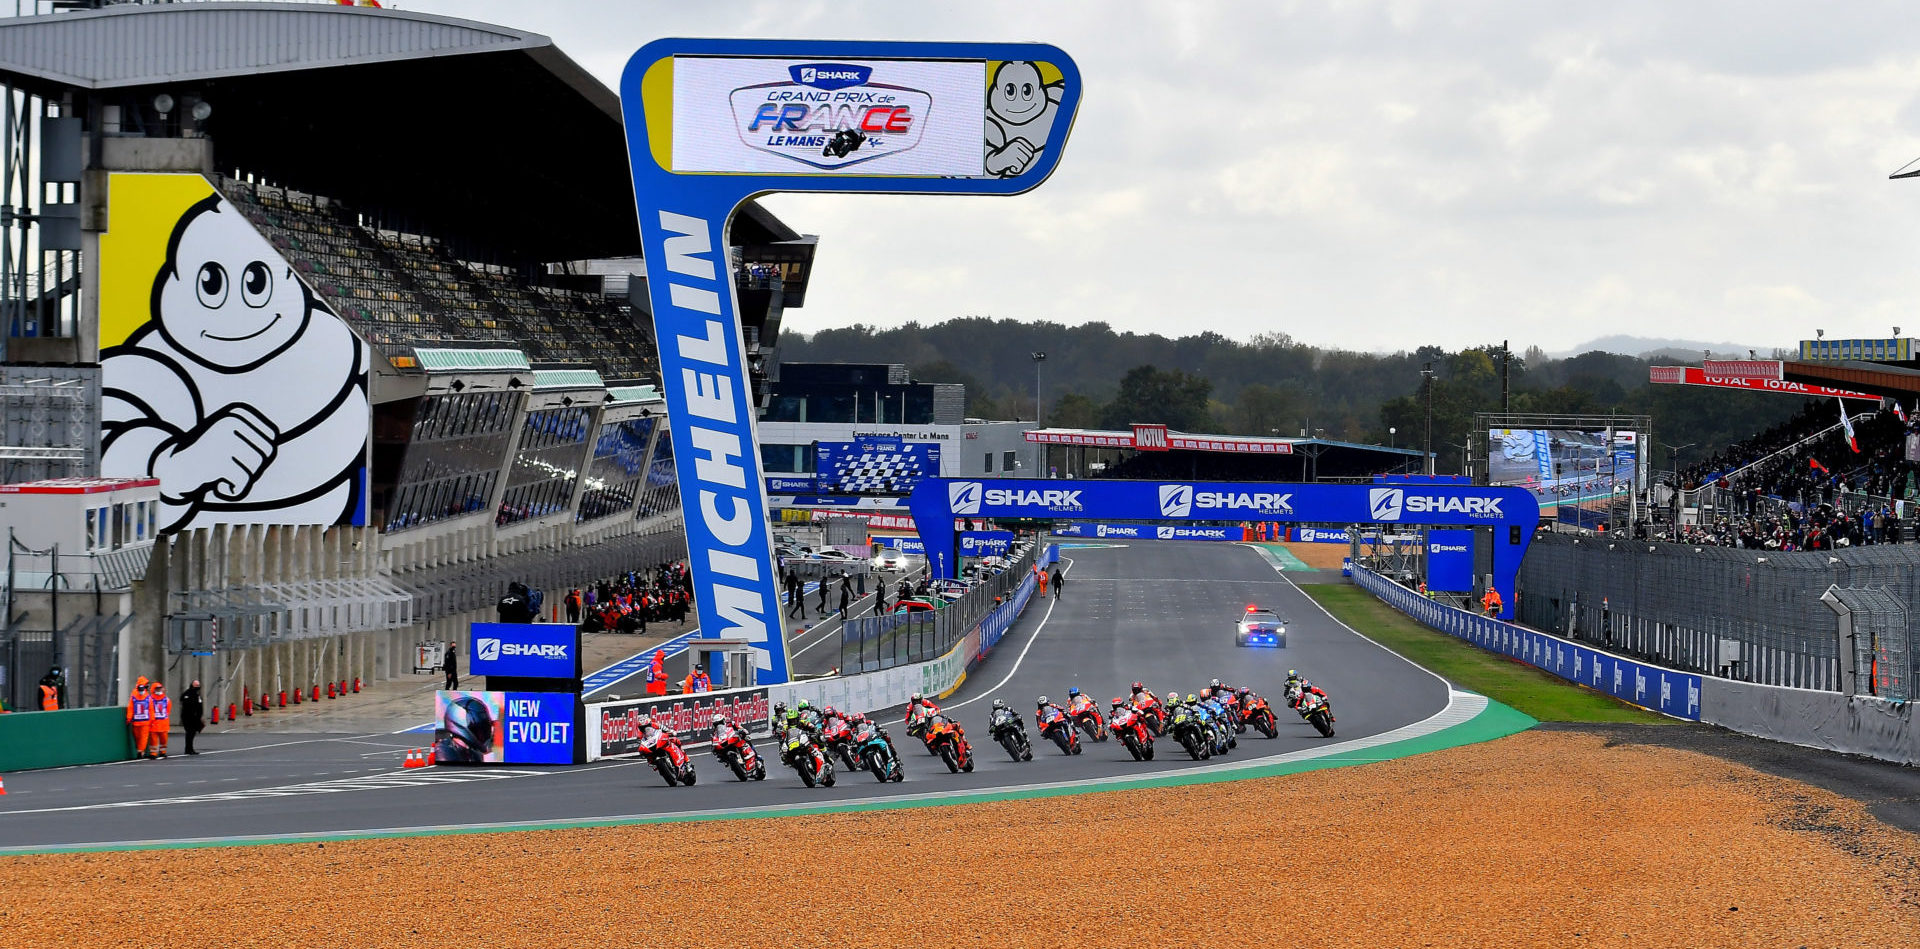 The start of the MotoGP race at Le Mans in 2020. Photo courtesy Michelin.